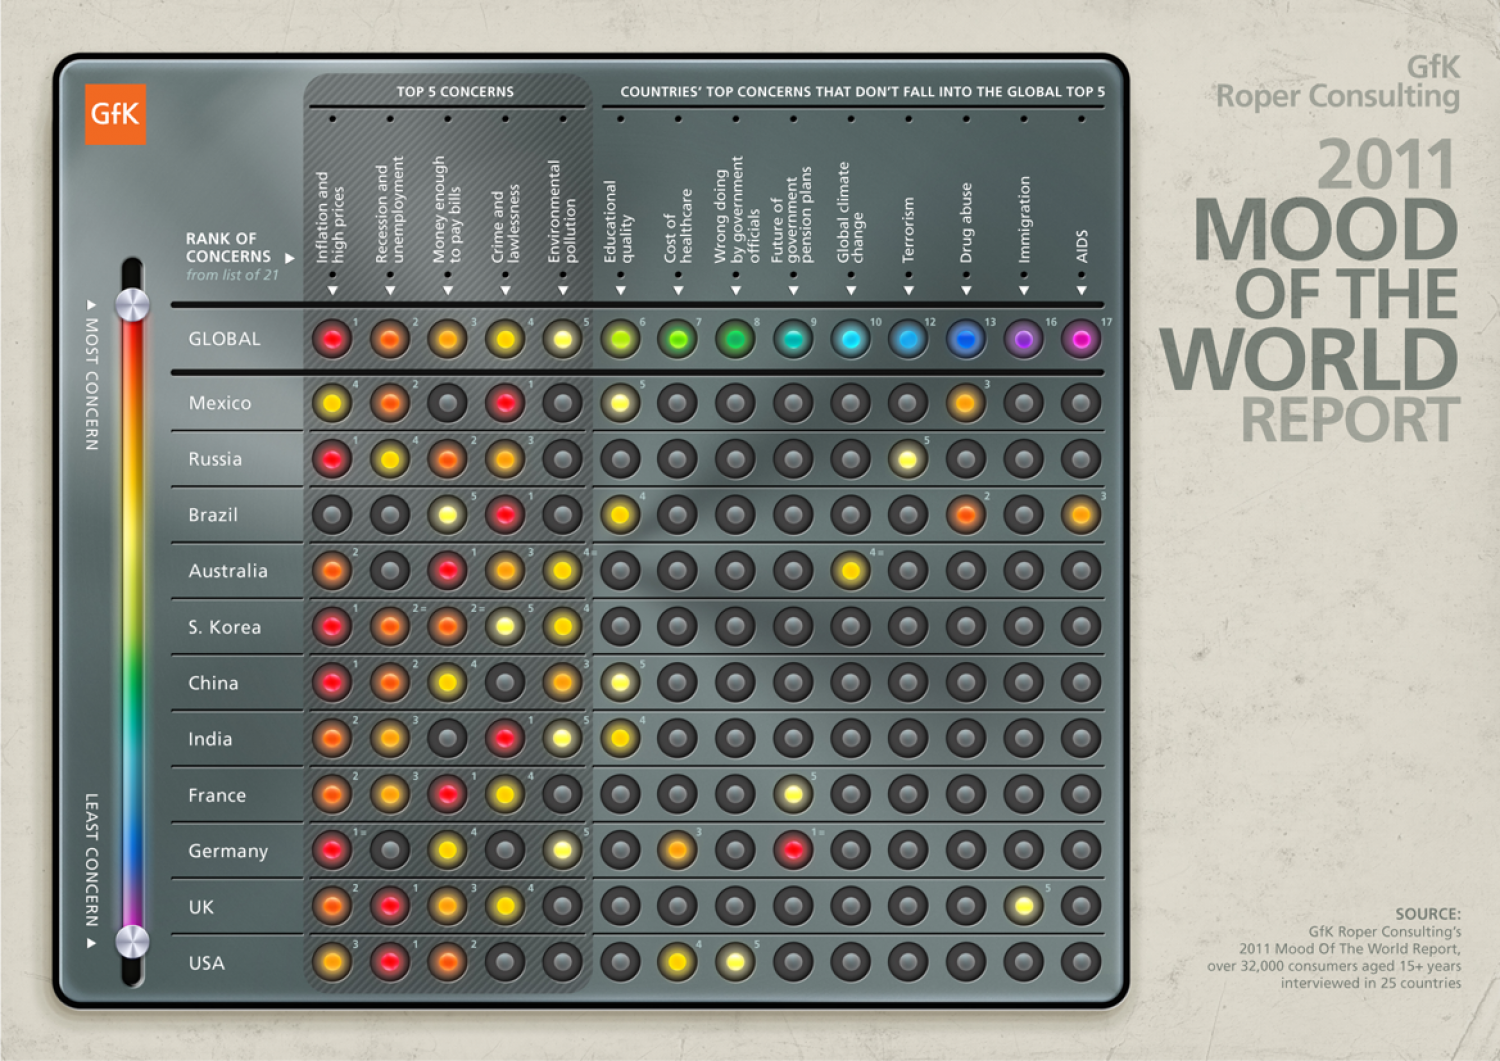 2011 Mood of the World Report  Infographic